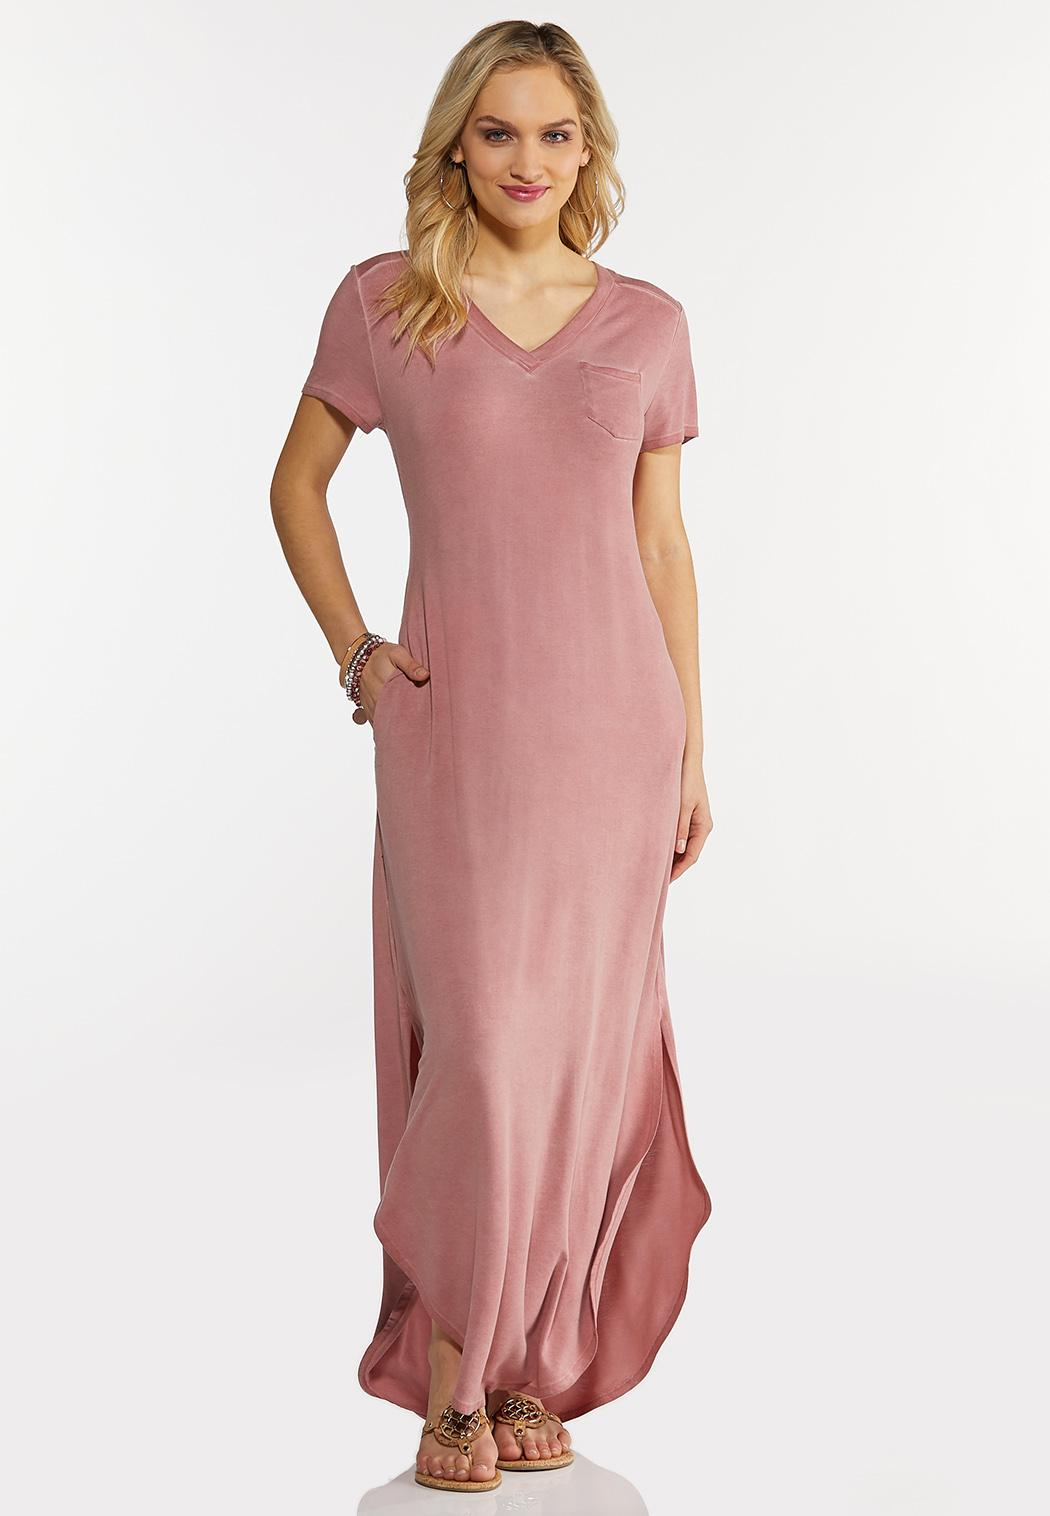 Petite Rose Knotted Maxi Dress (Item #44264509)